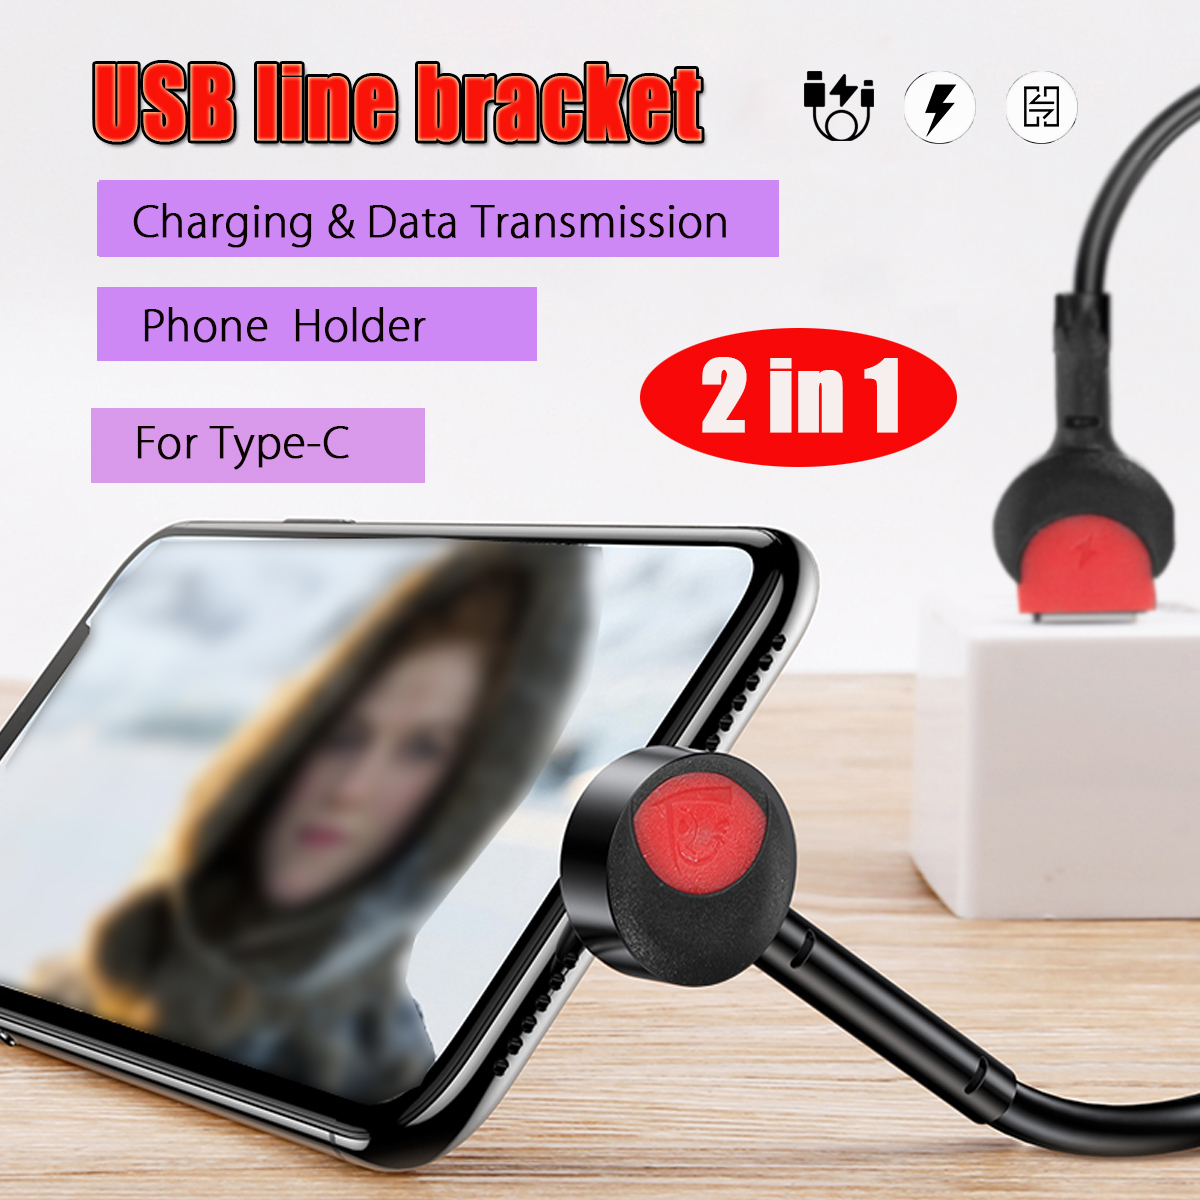 USB Type-C Cable 2 in 1 Charging Data Fast Charging